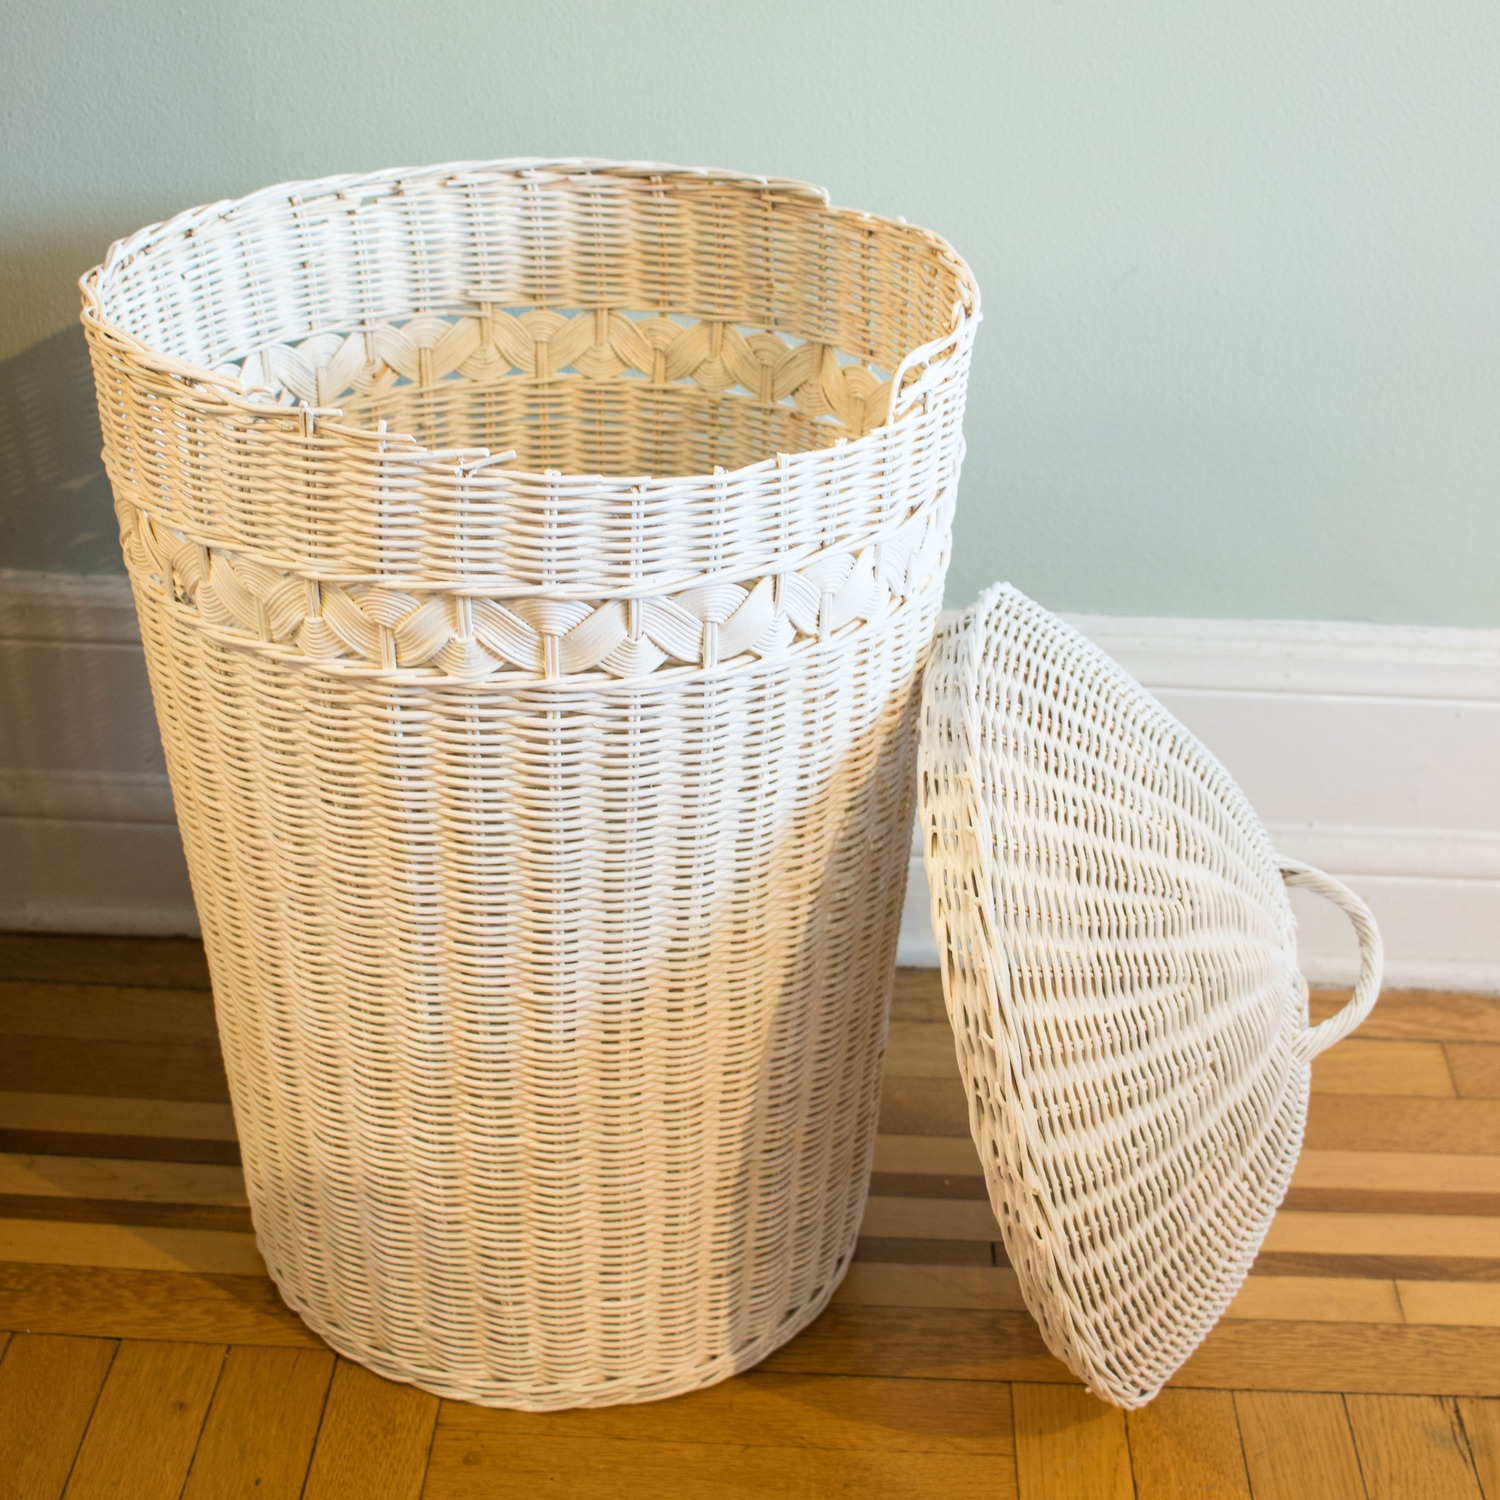 Round Wicker Basket for Blanket or Laundry Storage